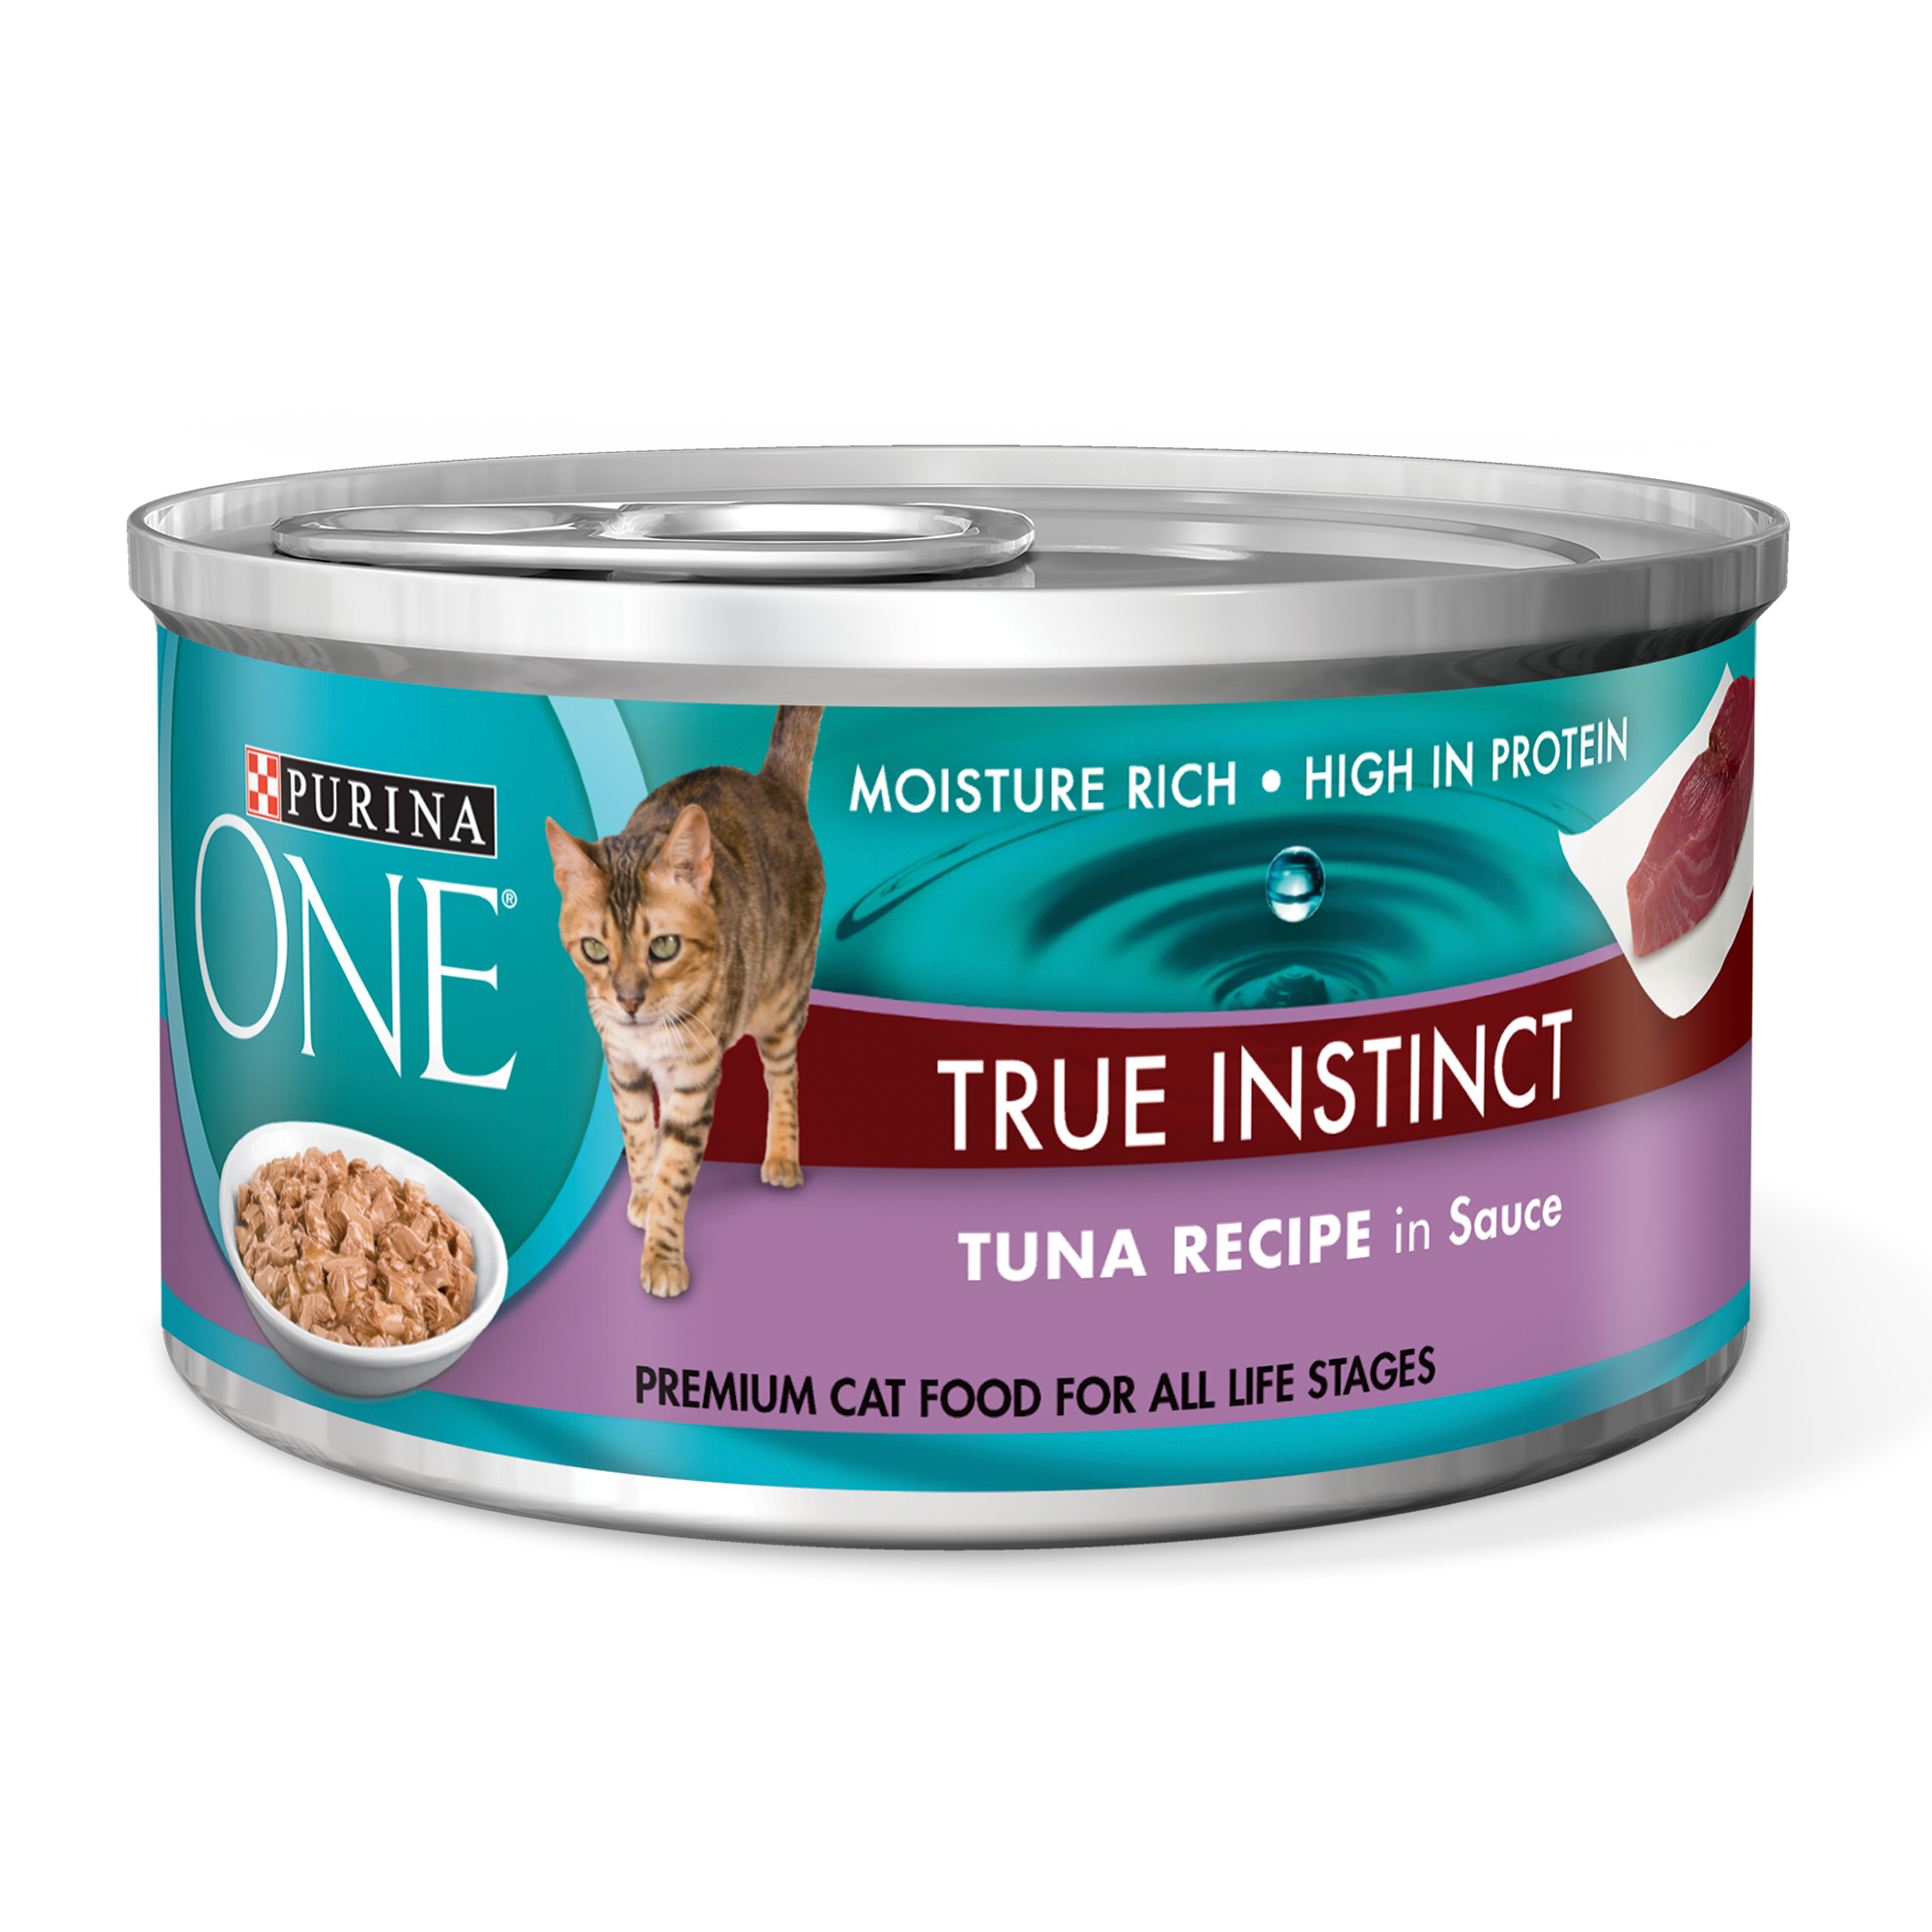 (4 Pack) Purina ONE True Instinct Tuna Recipe in Sauce Wet Cat Food - 3 oz. Pull-Top Can